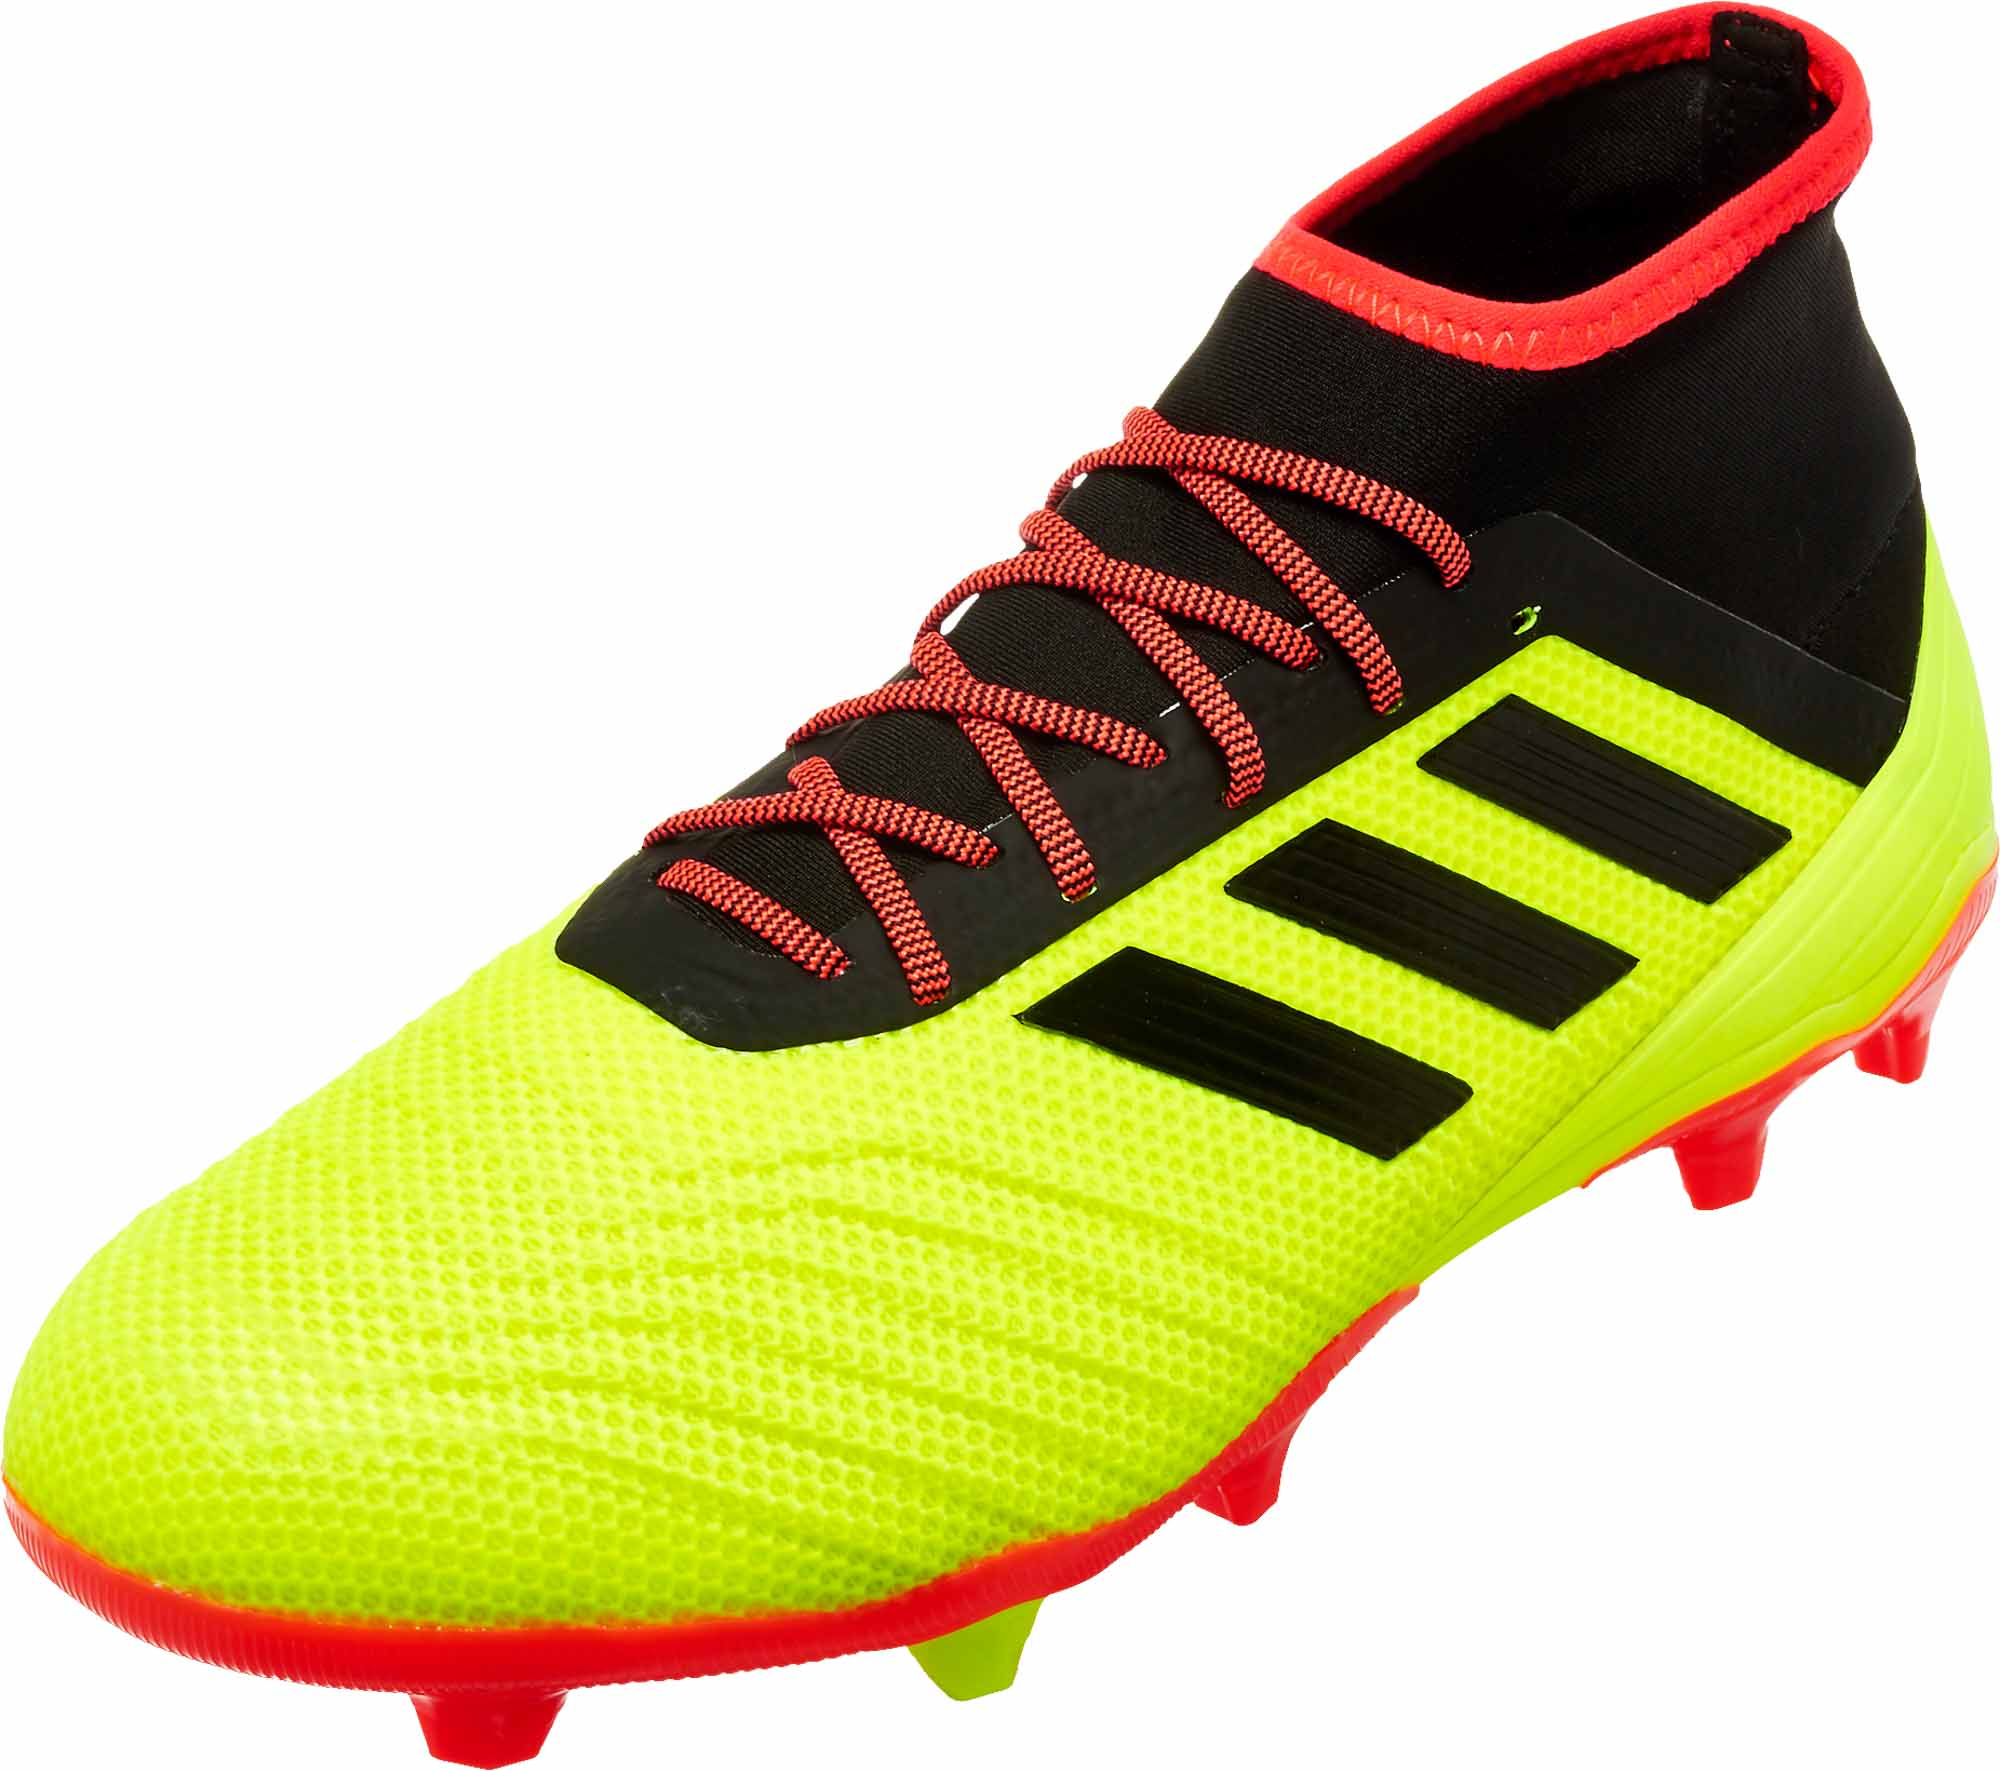 f3dbc8d005a7 ... where can i buy adidas predator 18.2 fg solar yellow black solar red  soccer master cd52b